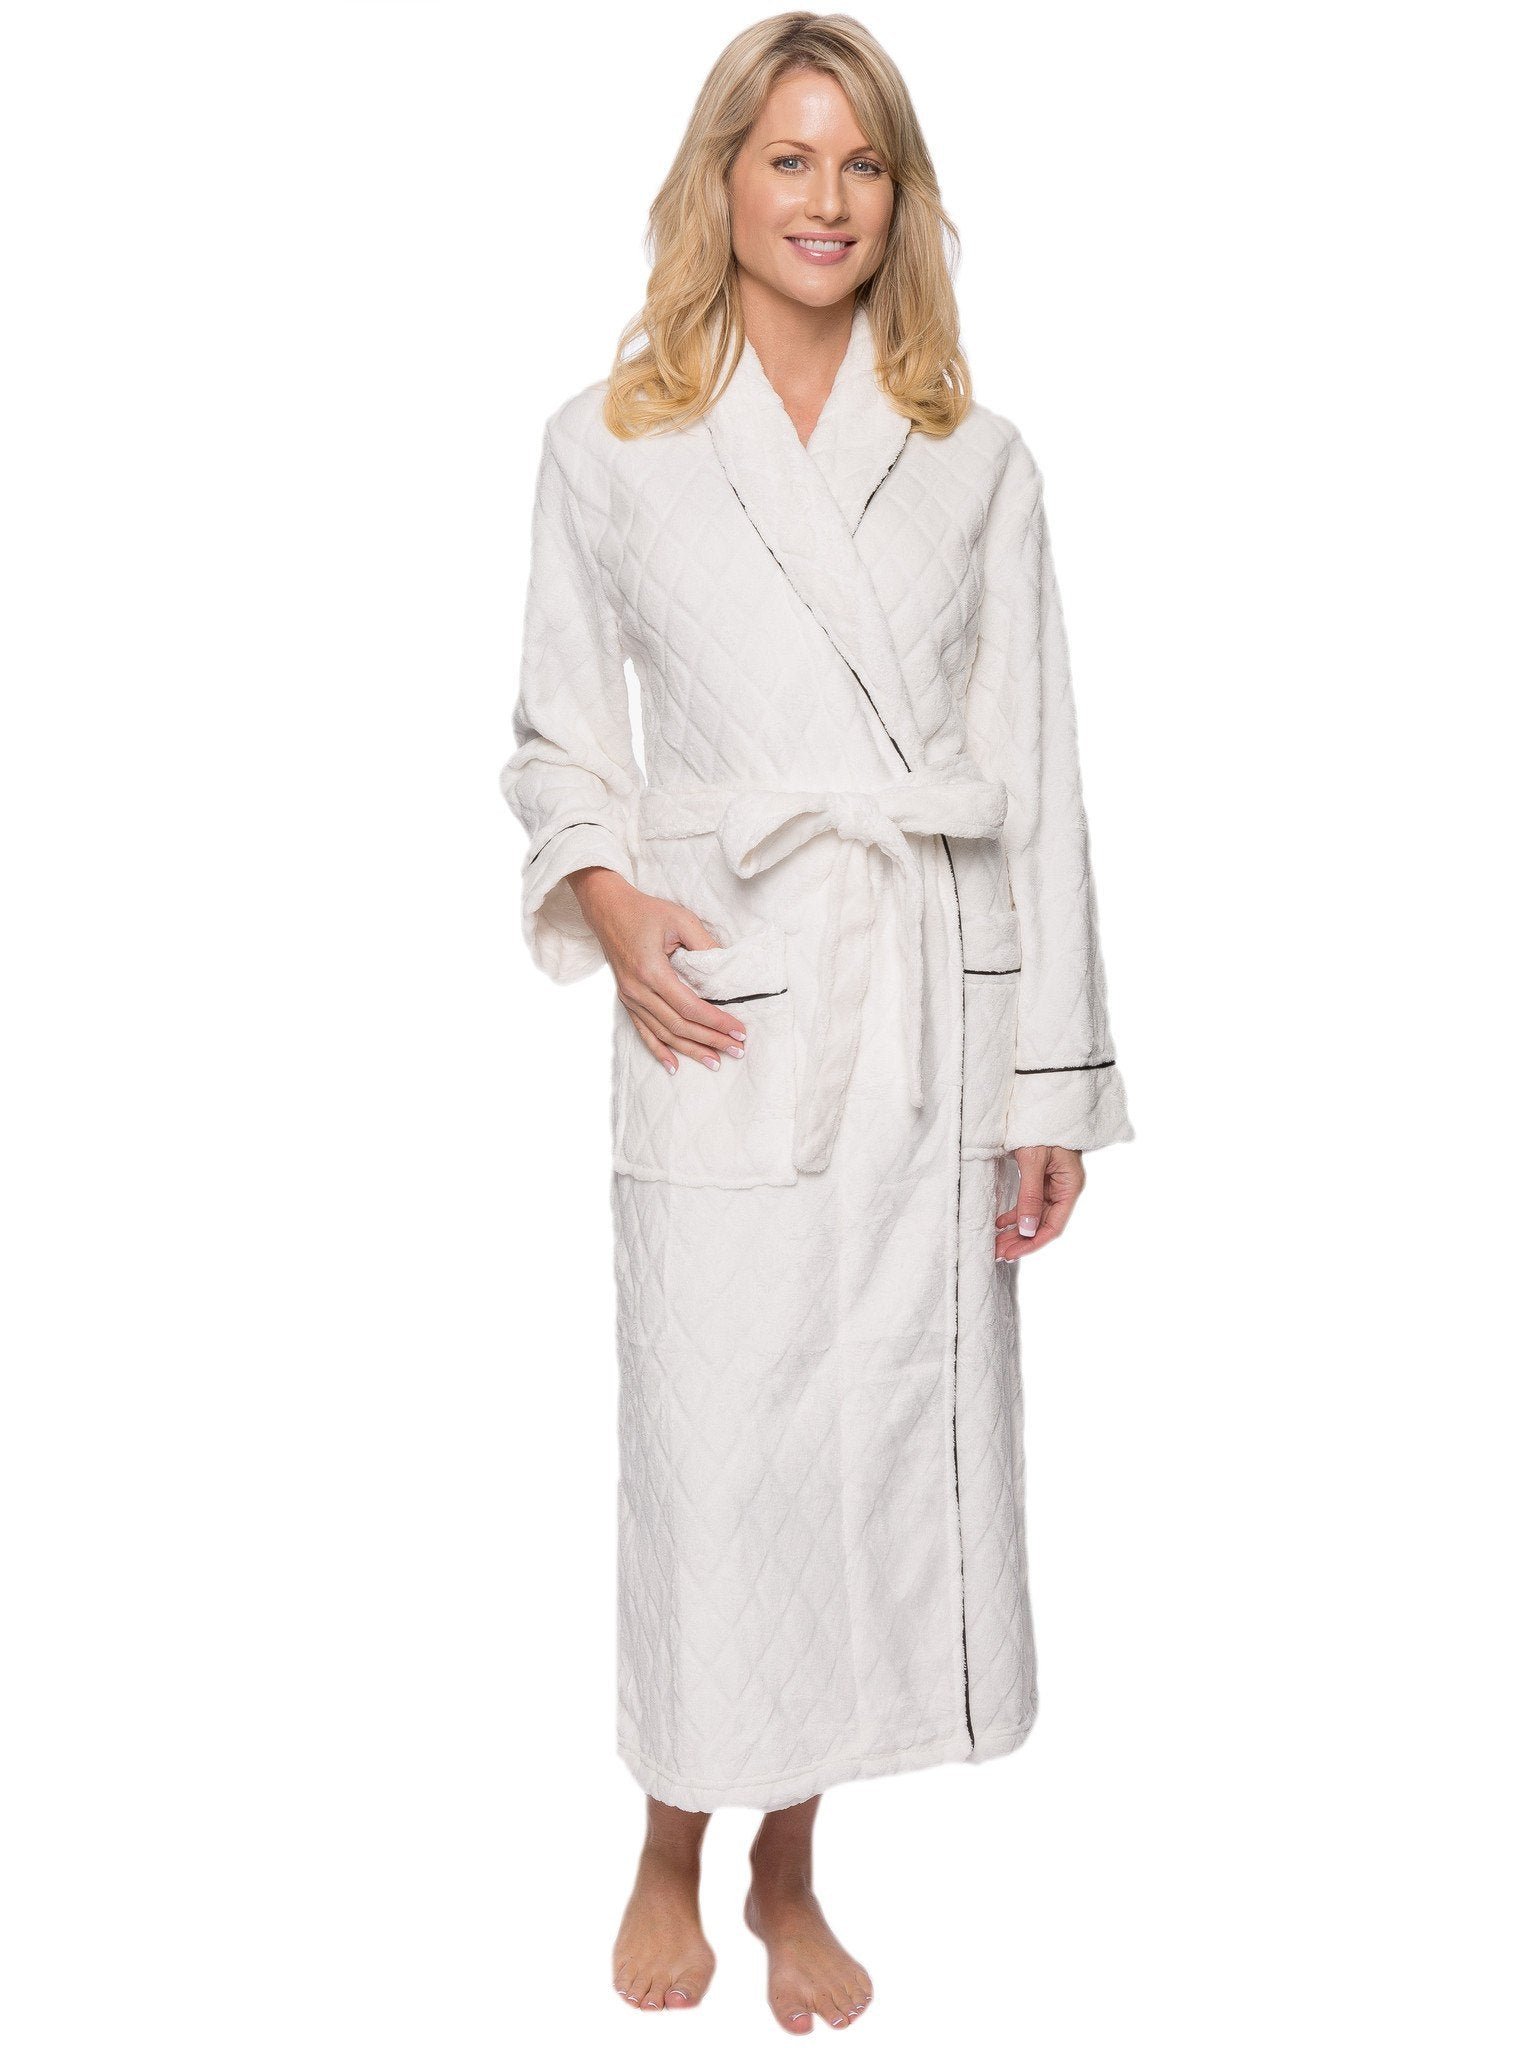 Women's Premium Coral Fleece Plush Spa/Bath Robe - Diamond Cream